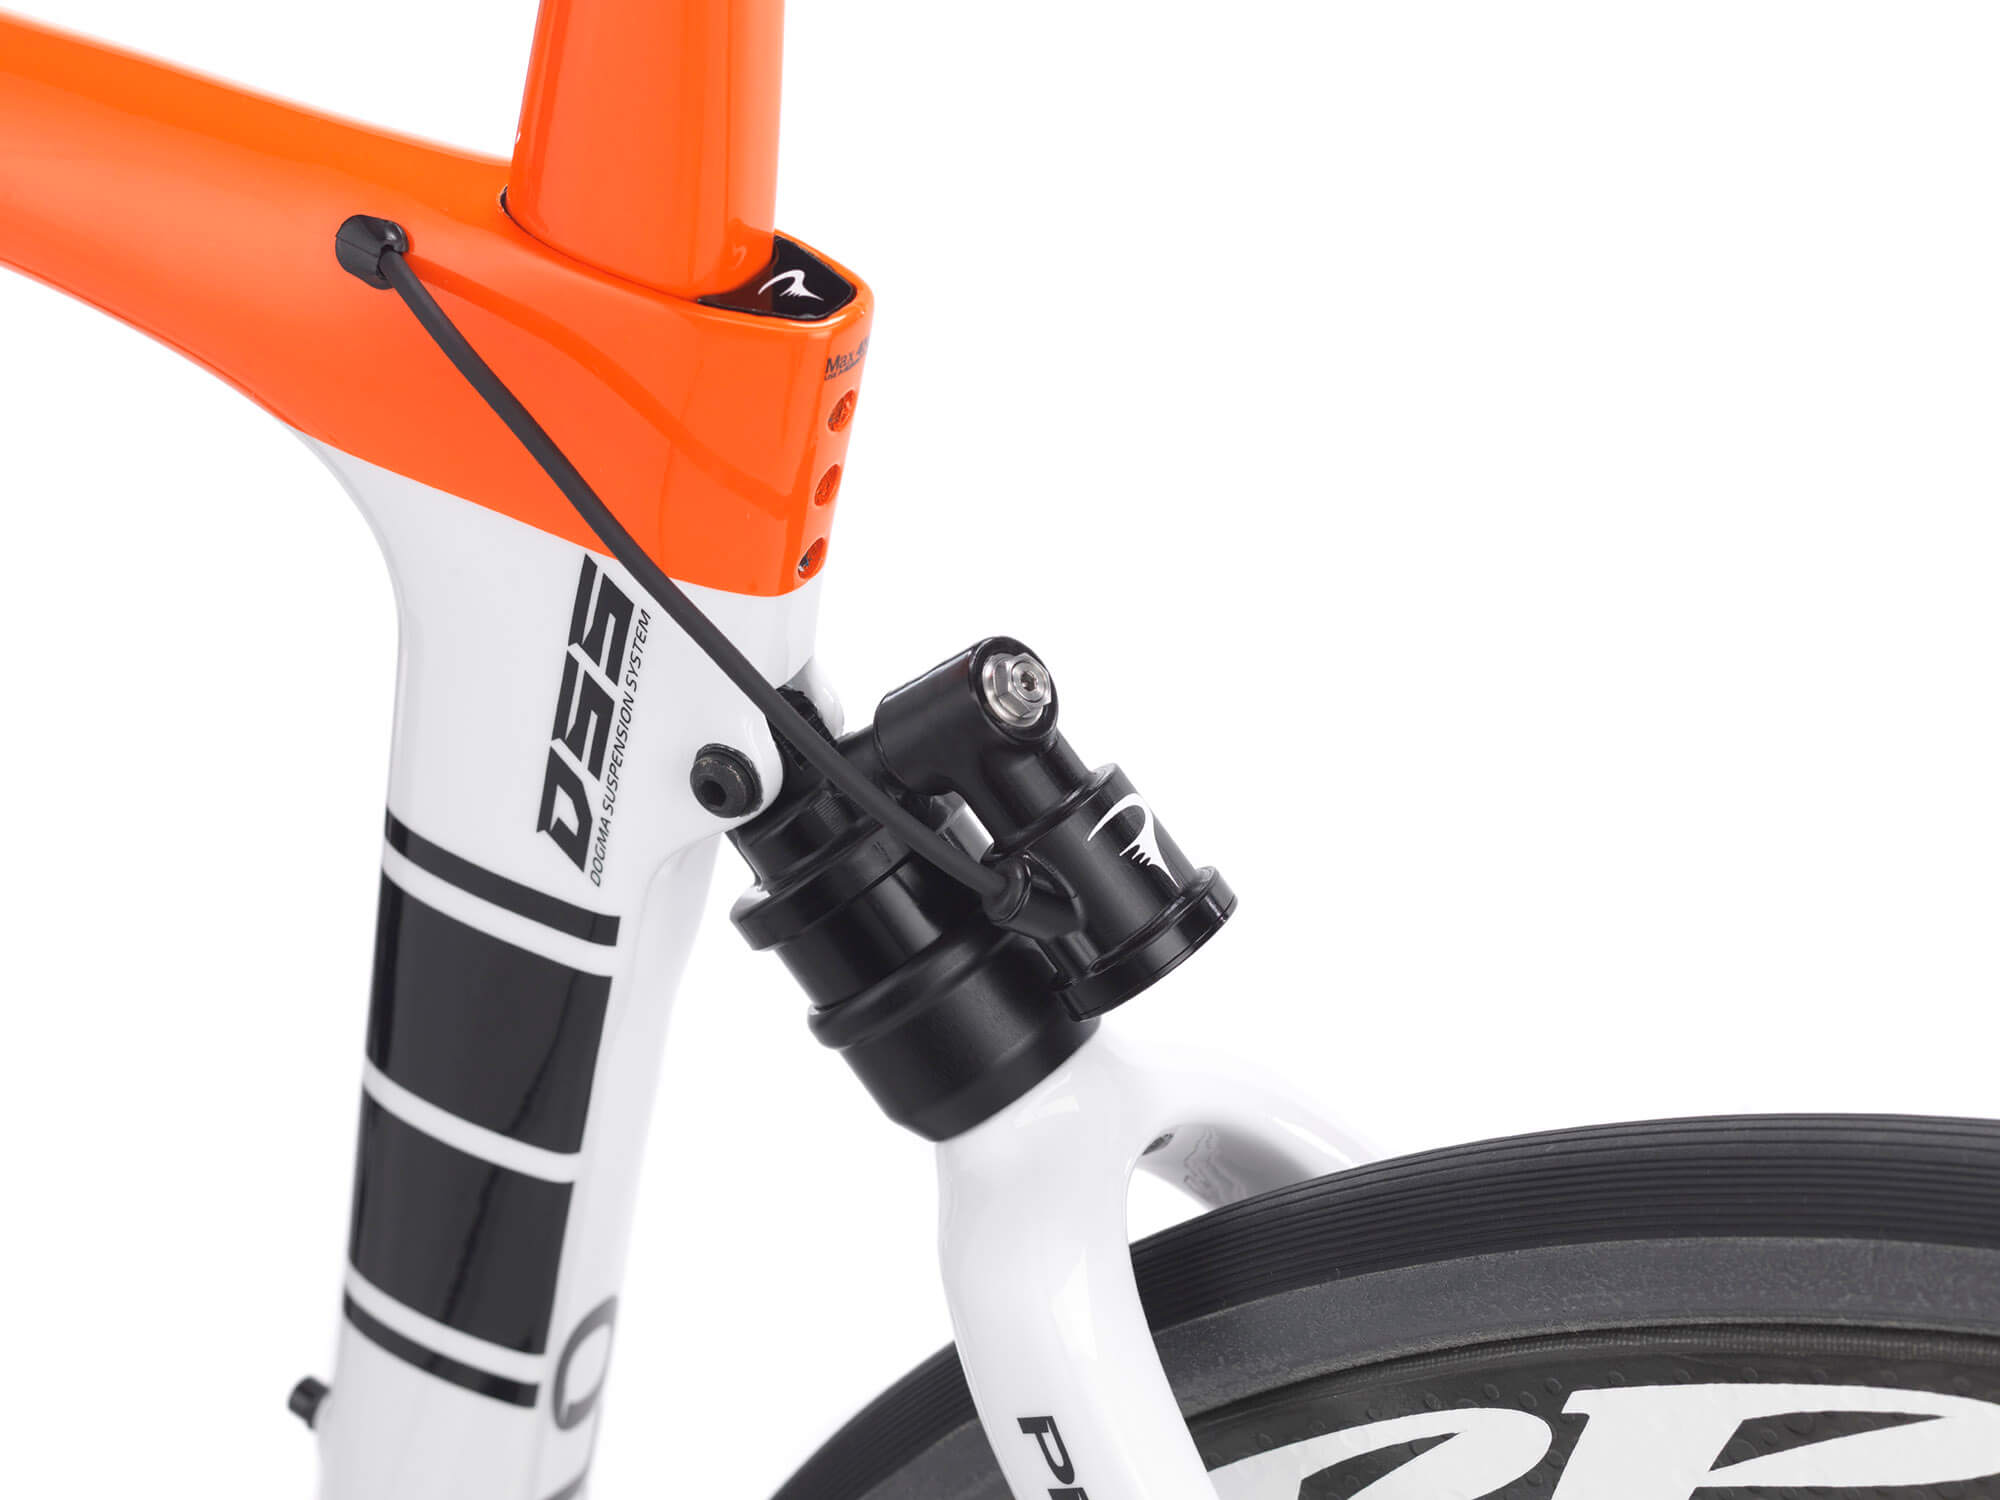 Pinarello Dogma K10S Disk chooses HiRide suspension